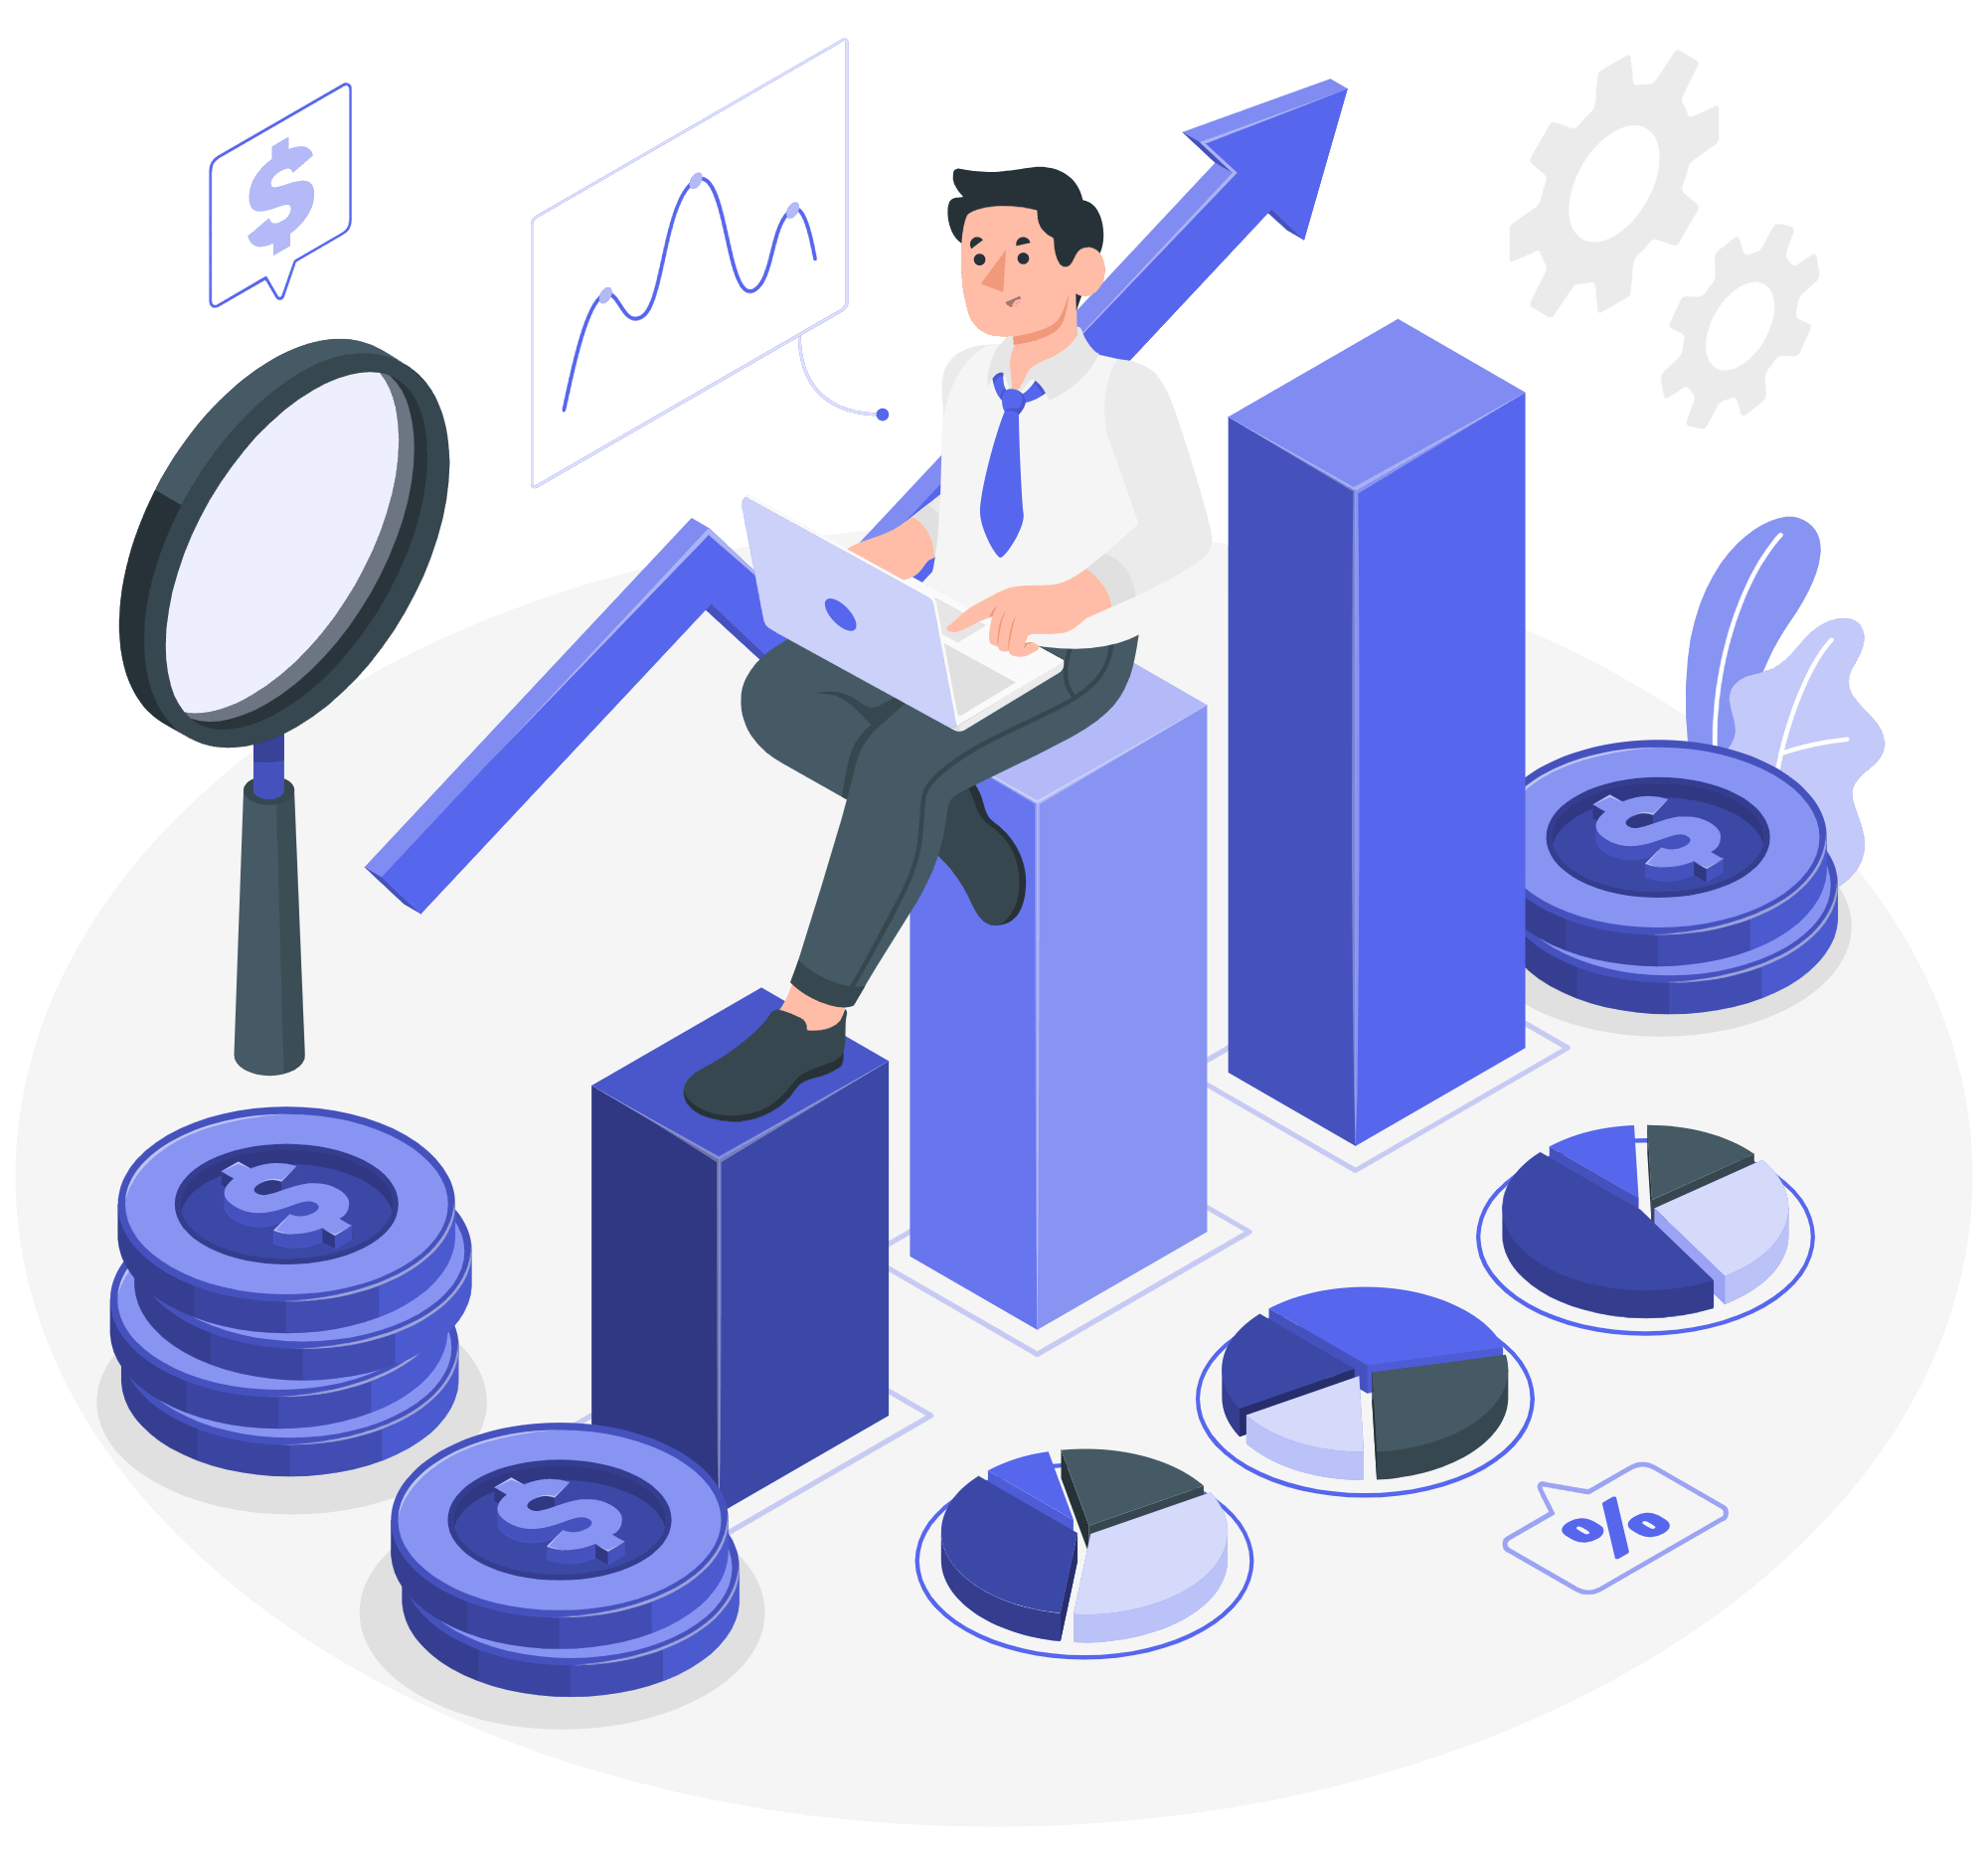 how to measure customer success roi: understand different metrics, gather data, and use tools to draw a trend or calculate roi